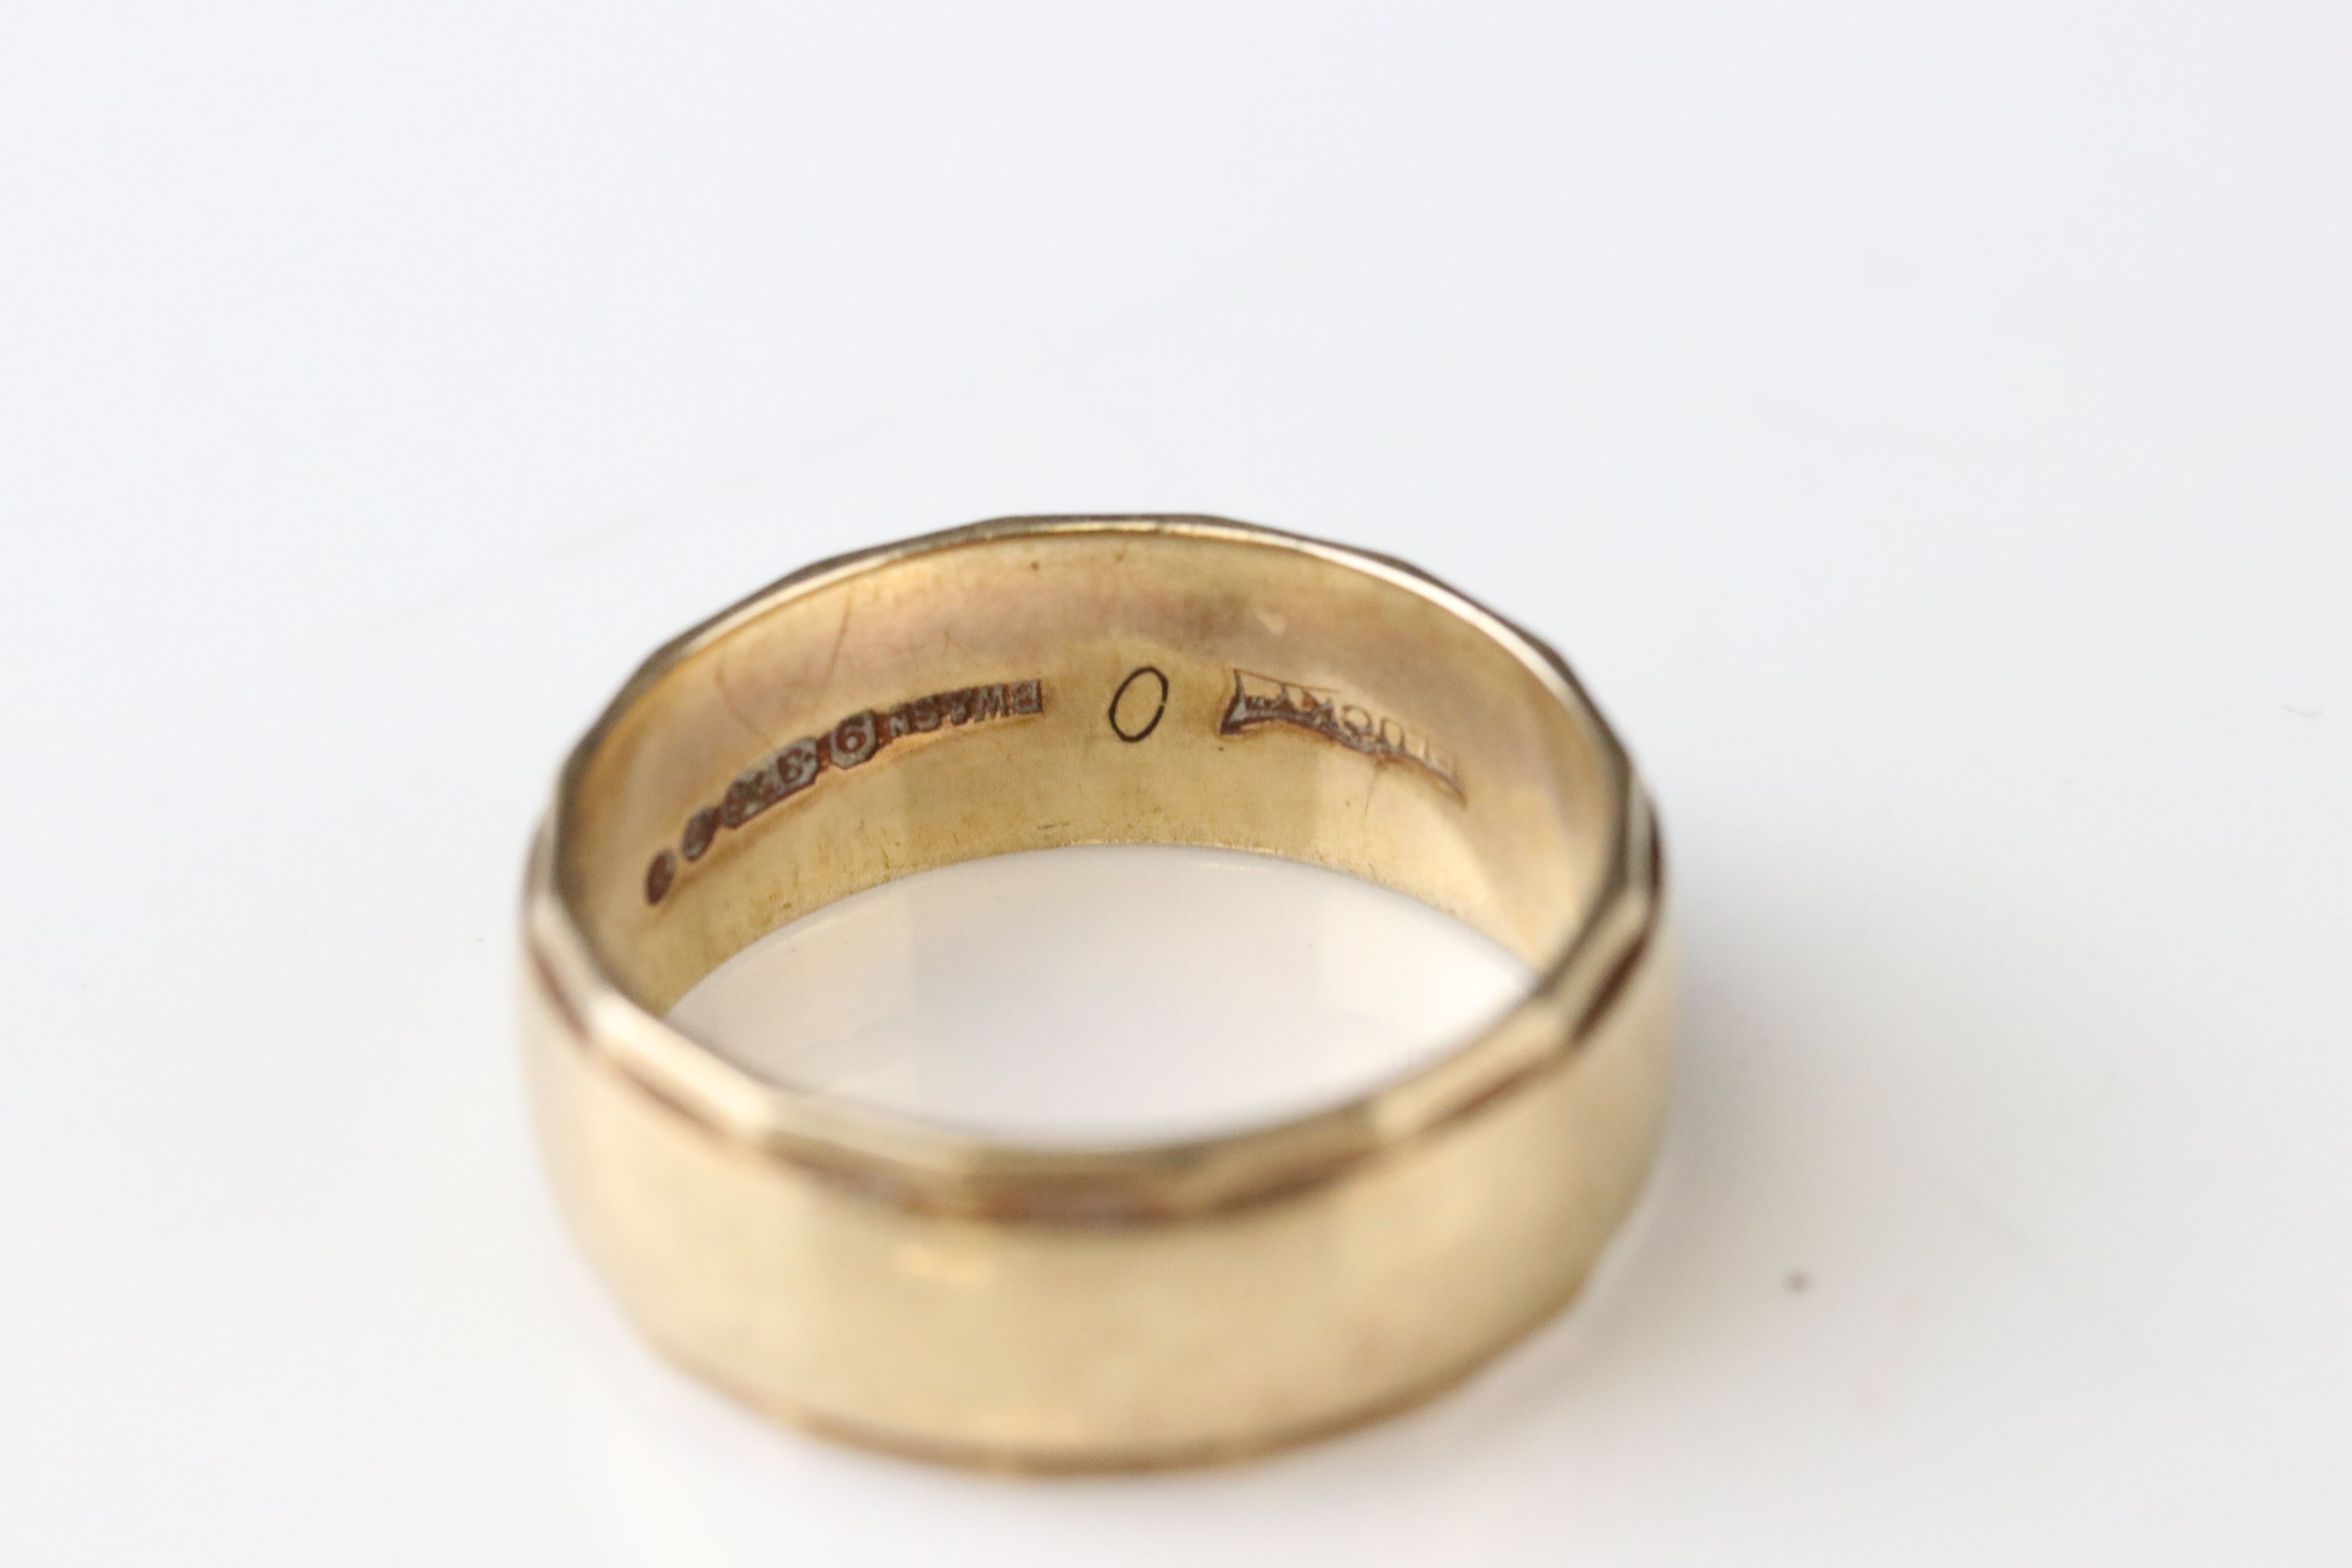 9ct yellow gold wedding band, width approx 2mm, ring size M½, together with a 9ct yellow gold - Image 4 of 5